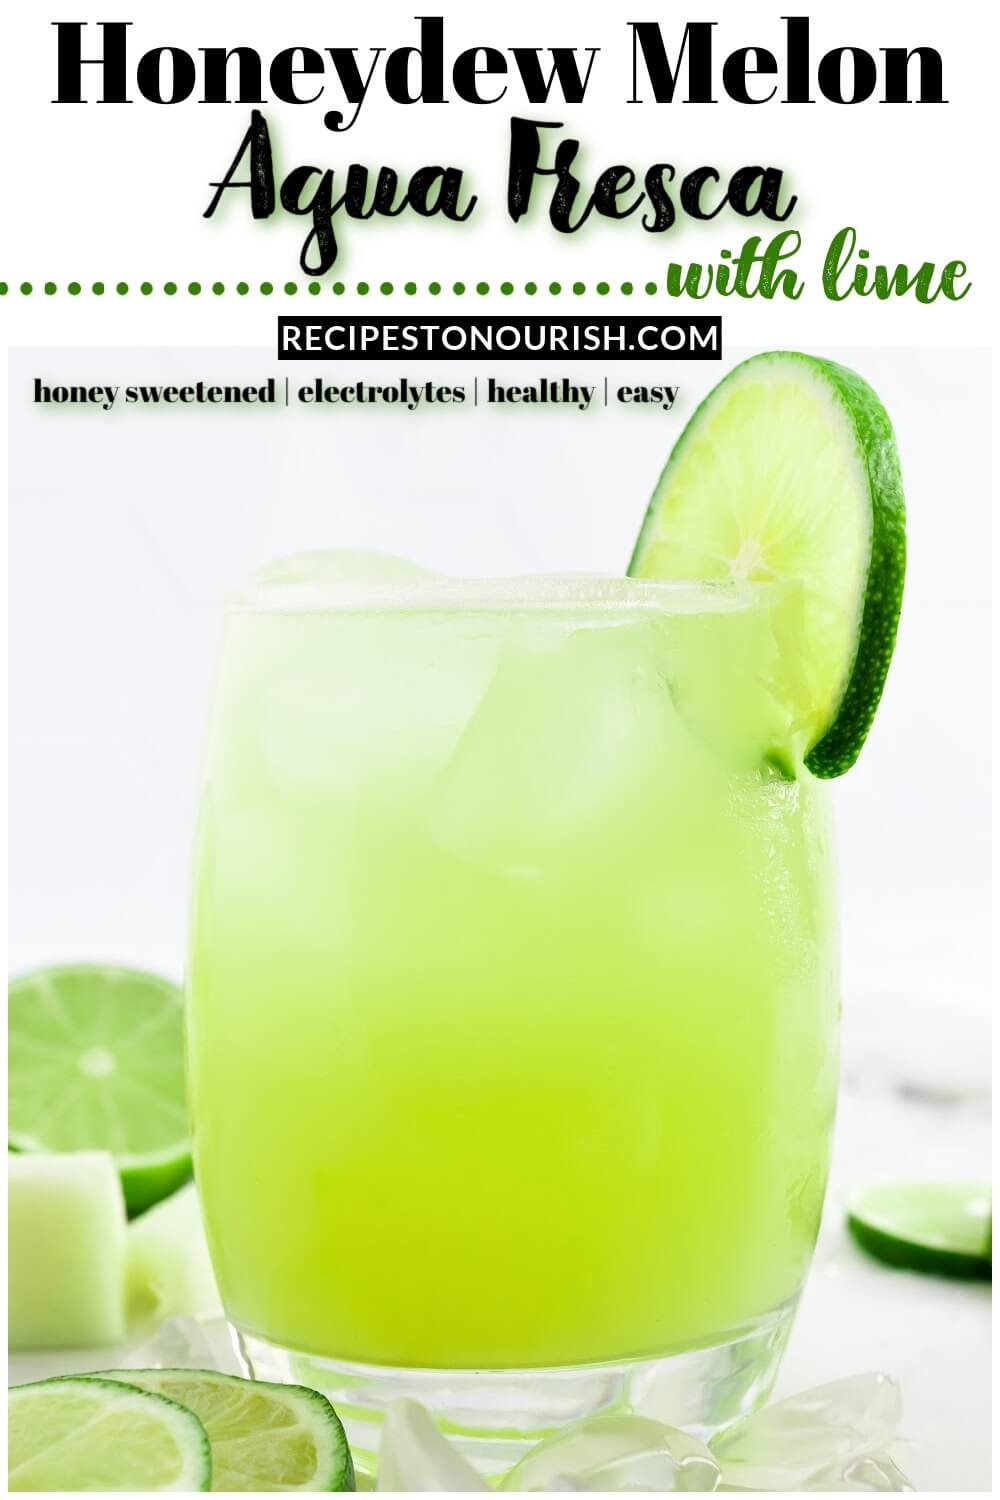 Glass filled with iced green-colored drink with a slice of fresh lime on the rim, surrounded by chunks of honeydew and fresh lime slices and the text Honeydew Melon Agua Fresca with Lime.